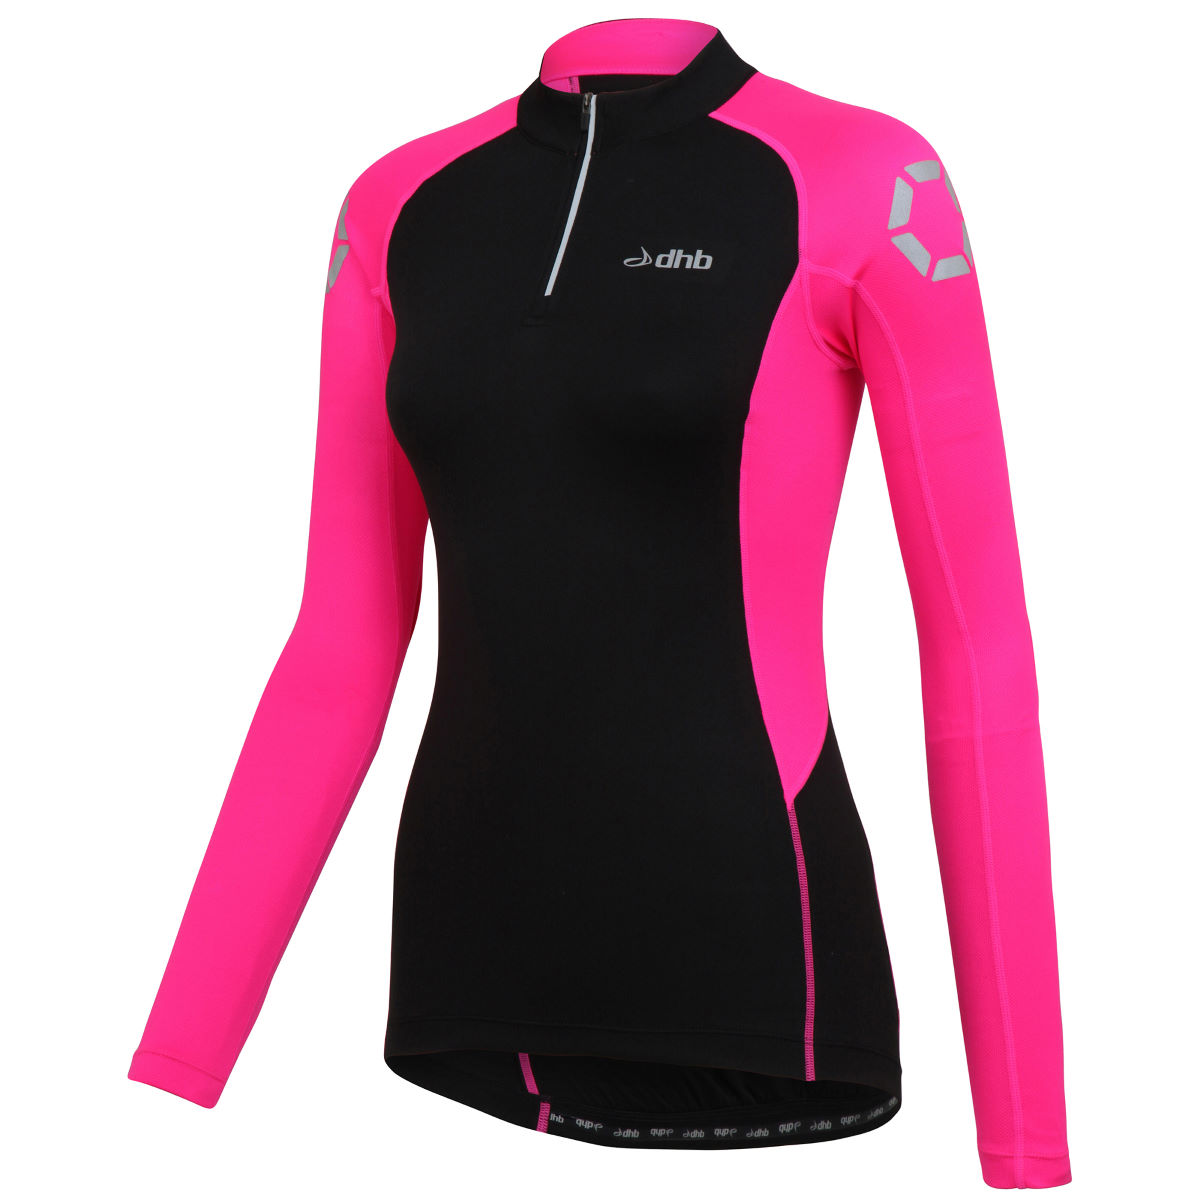 Maillot Femme dhb Flashlight (manches longues) - 8 UK Fluro Pink